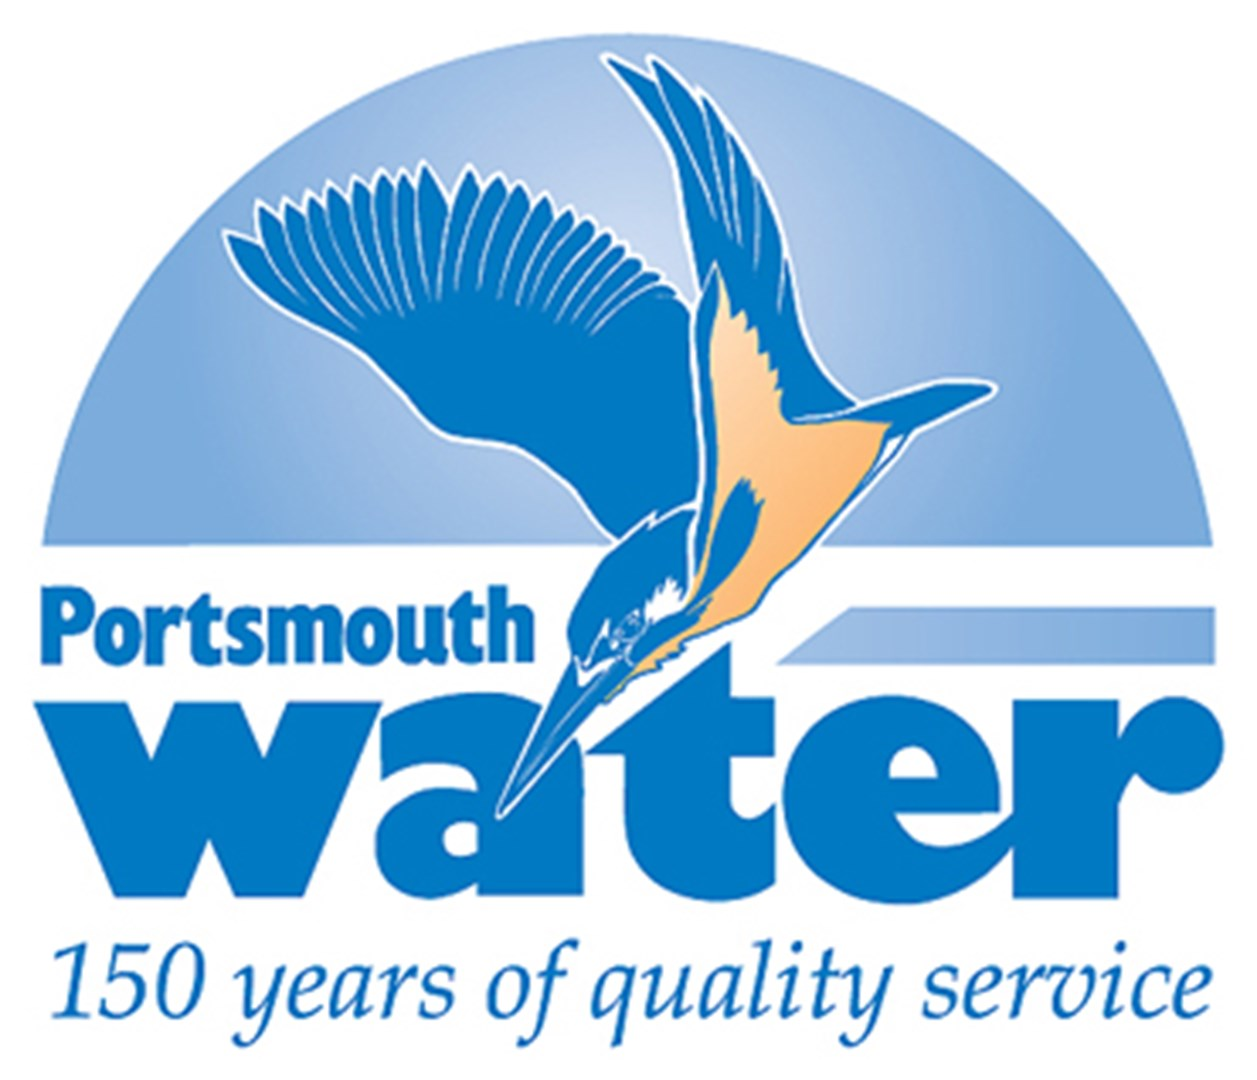 PorthsmouthWater